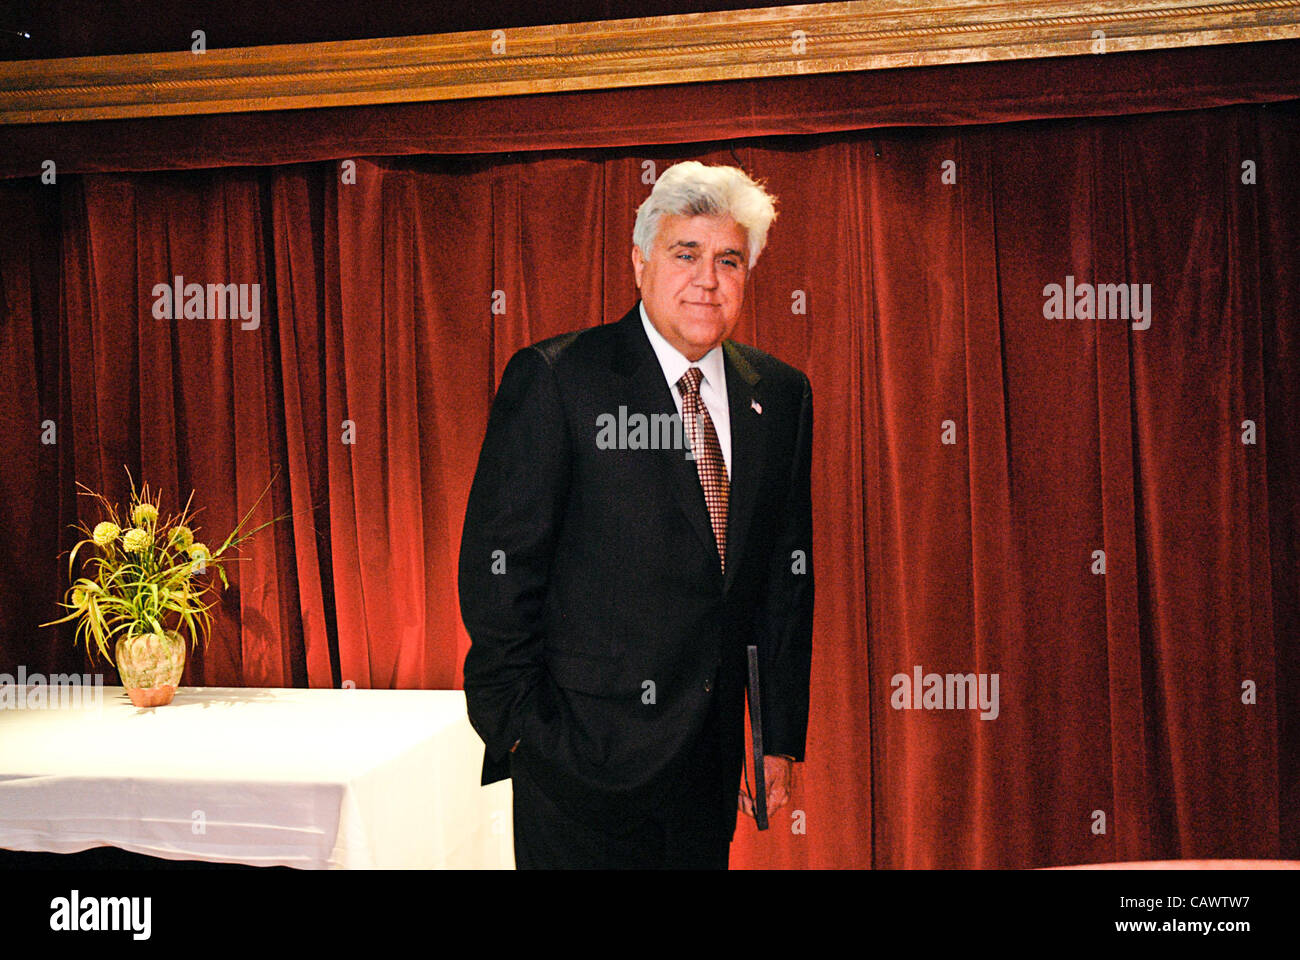 Jay Leno performed at the Cadillac Palace Theater in Chicago on April 28, 2012 to help raise funds for Omni Youth - Stock Image